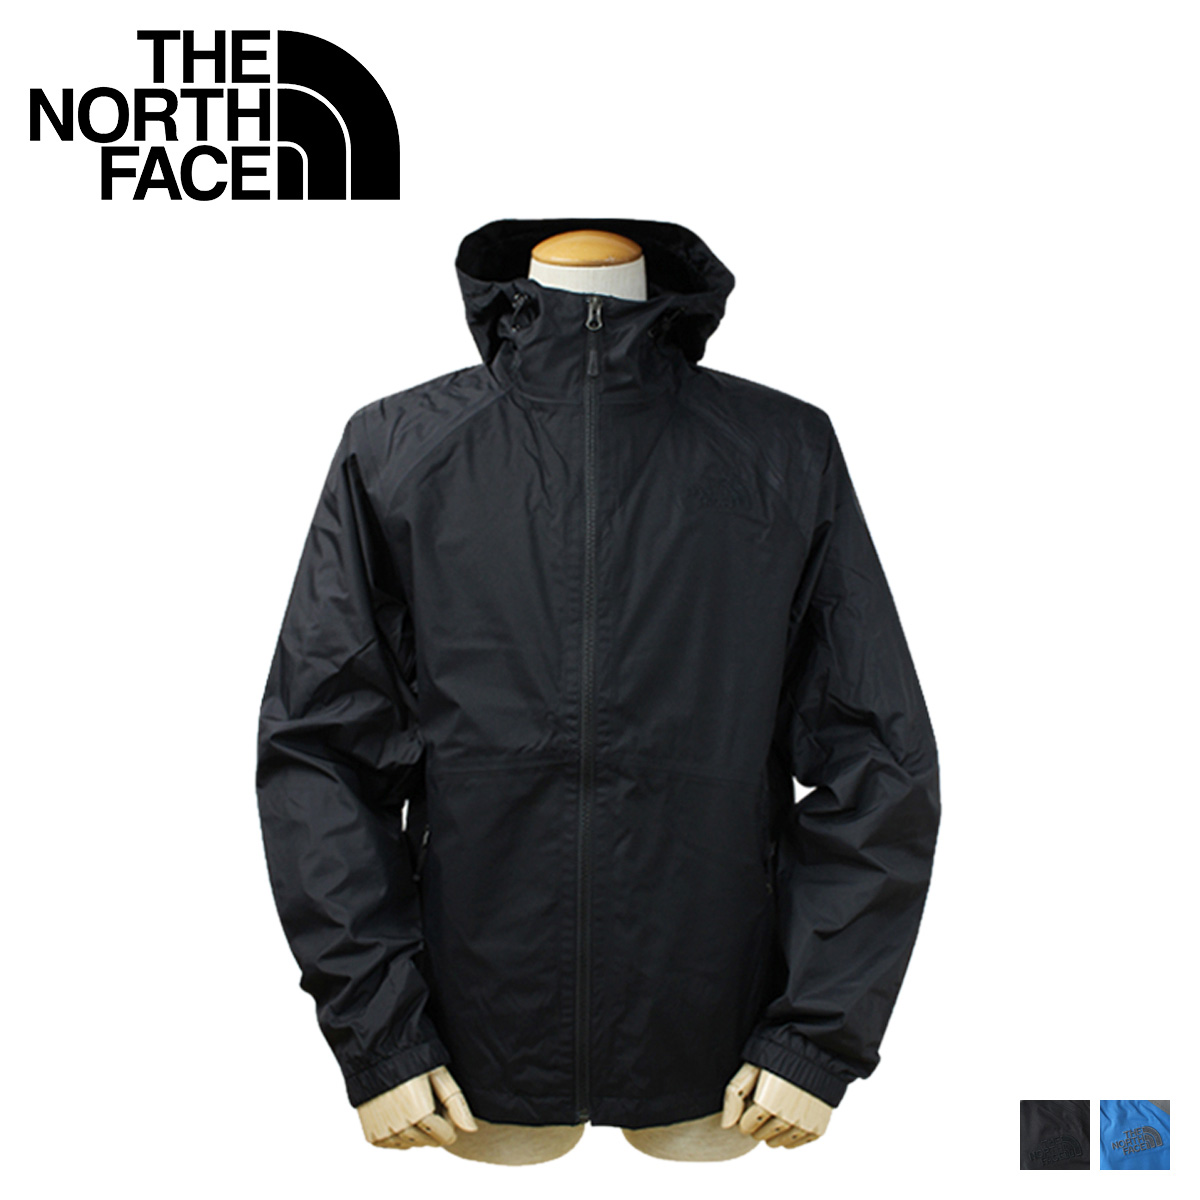 Whats Up Sports The North Face Rain Jackets Men S All About Jacket